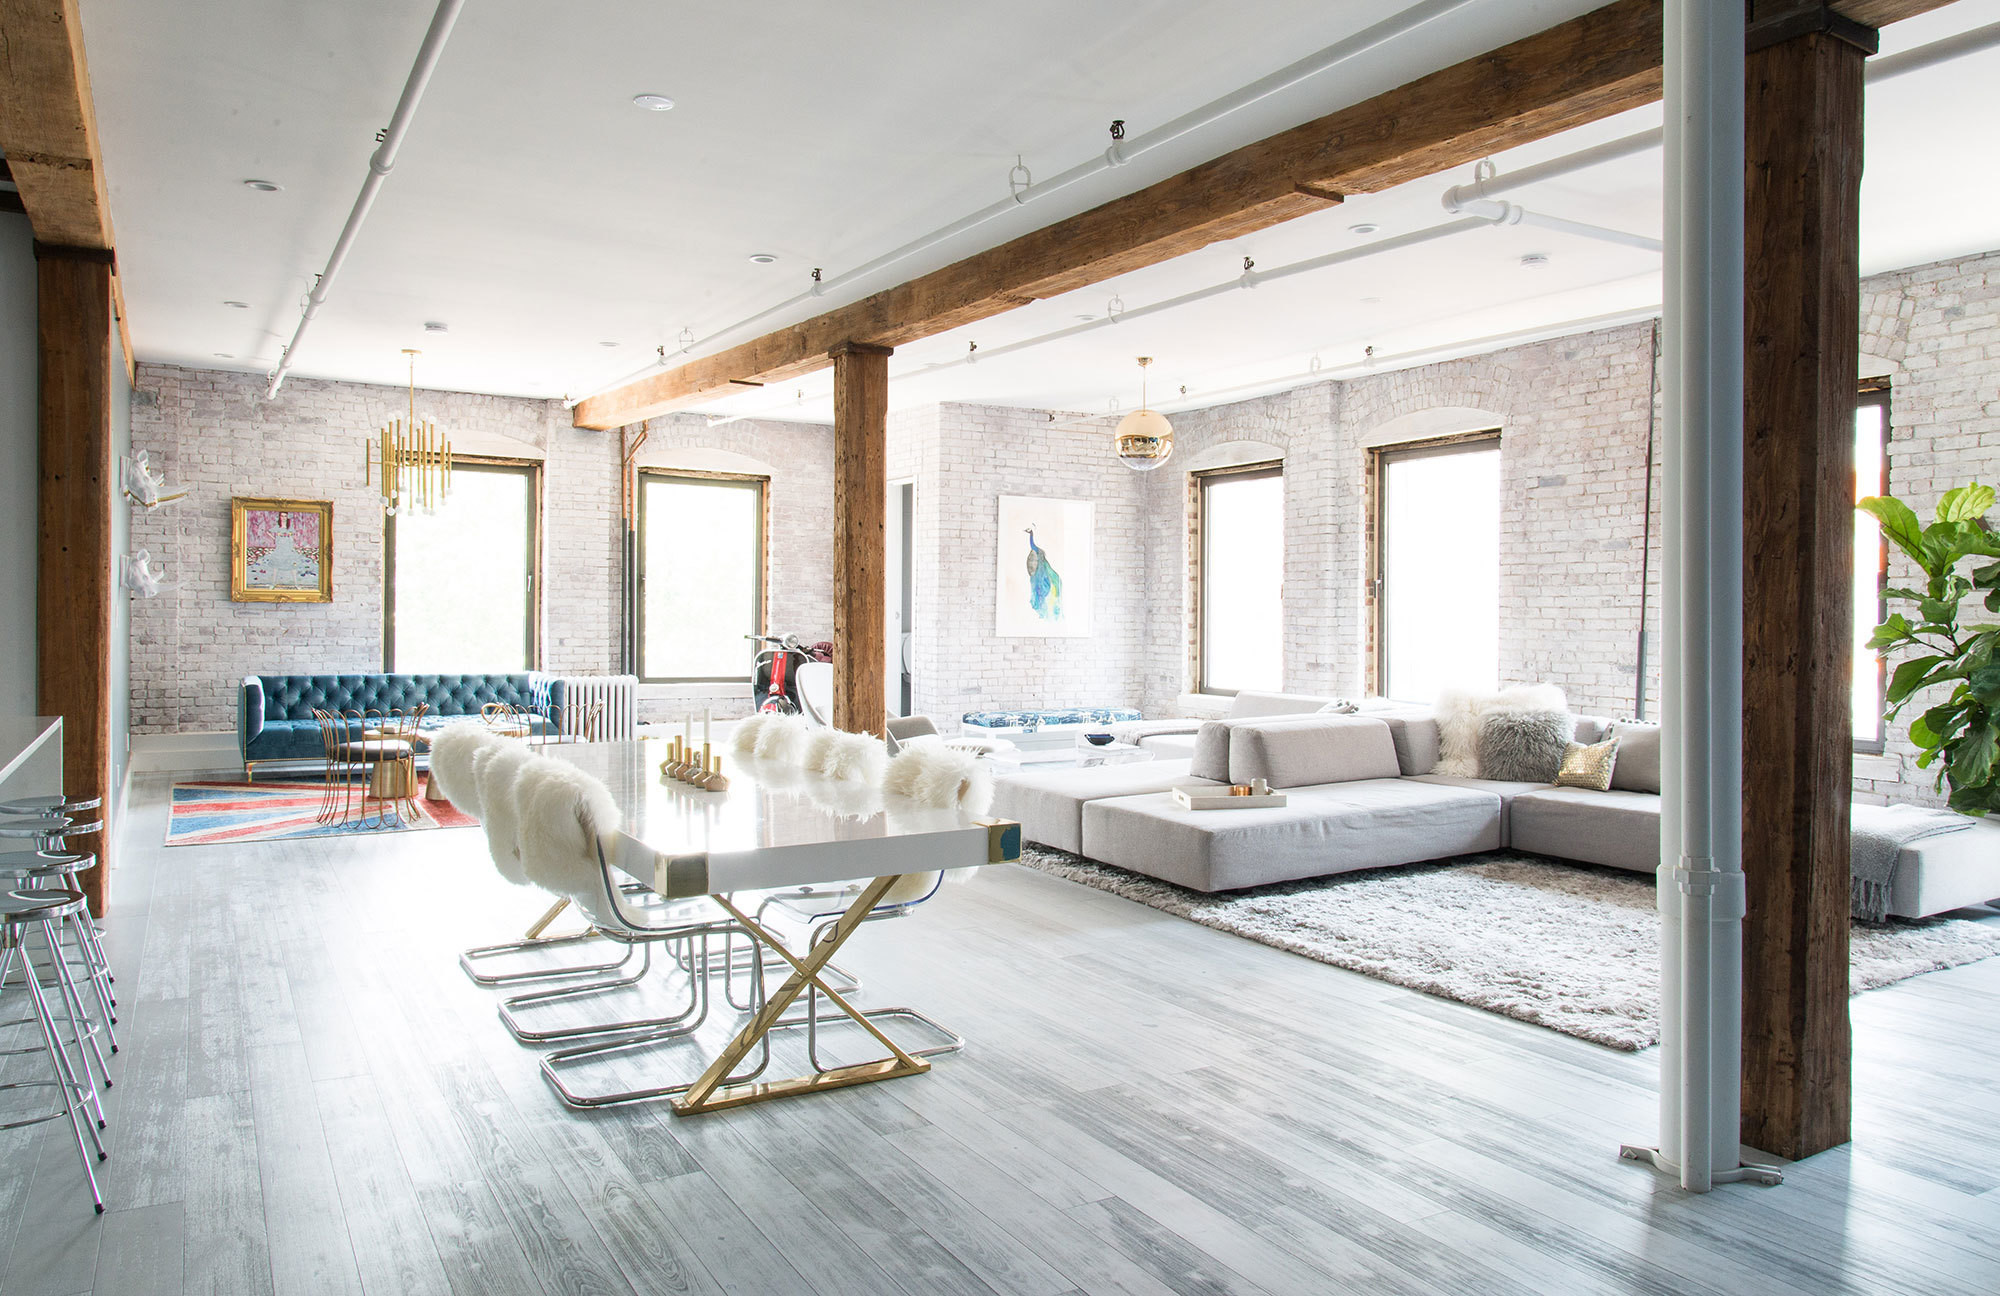 In A Spacious Brooklyn Loft Homepolish Designer Allison Petty Combinednbspoverscale Furnishings With Boldnbsp